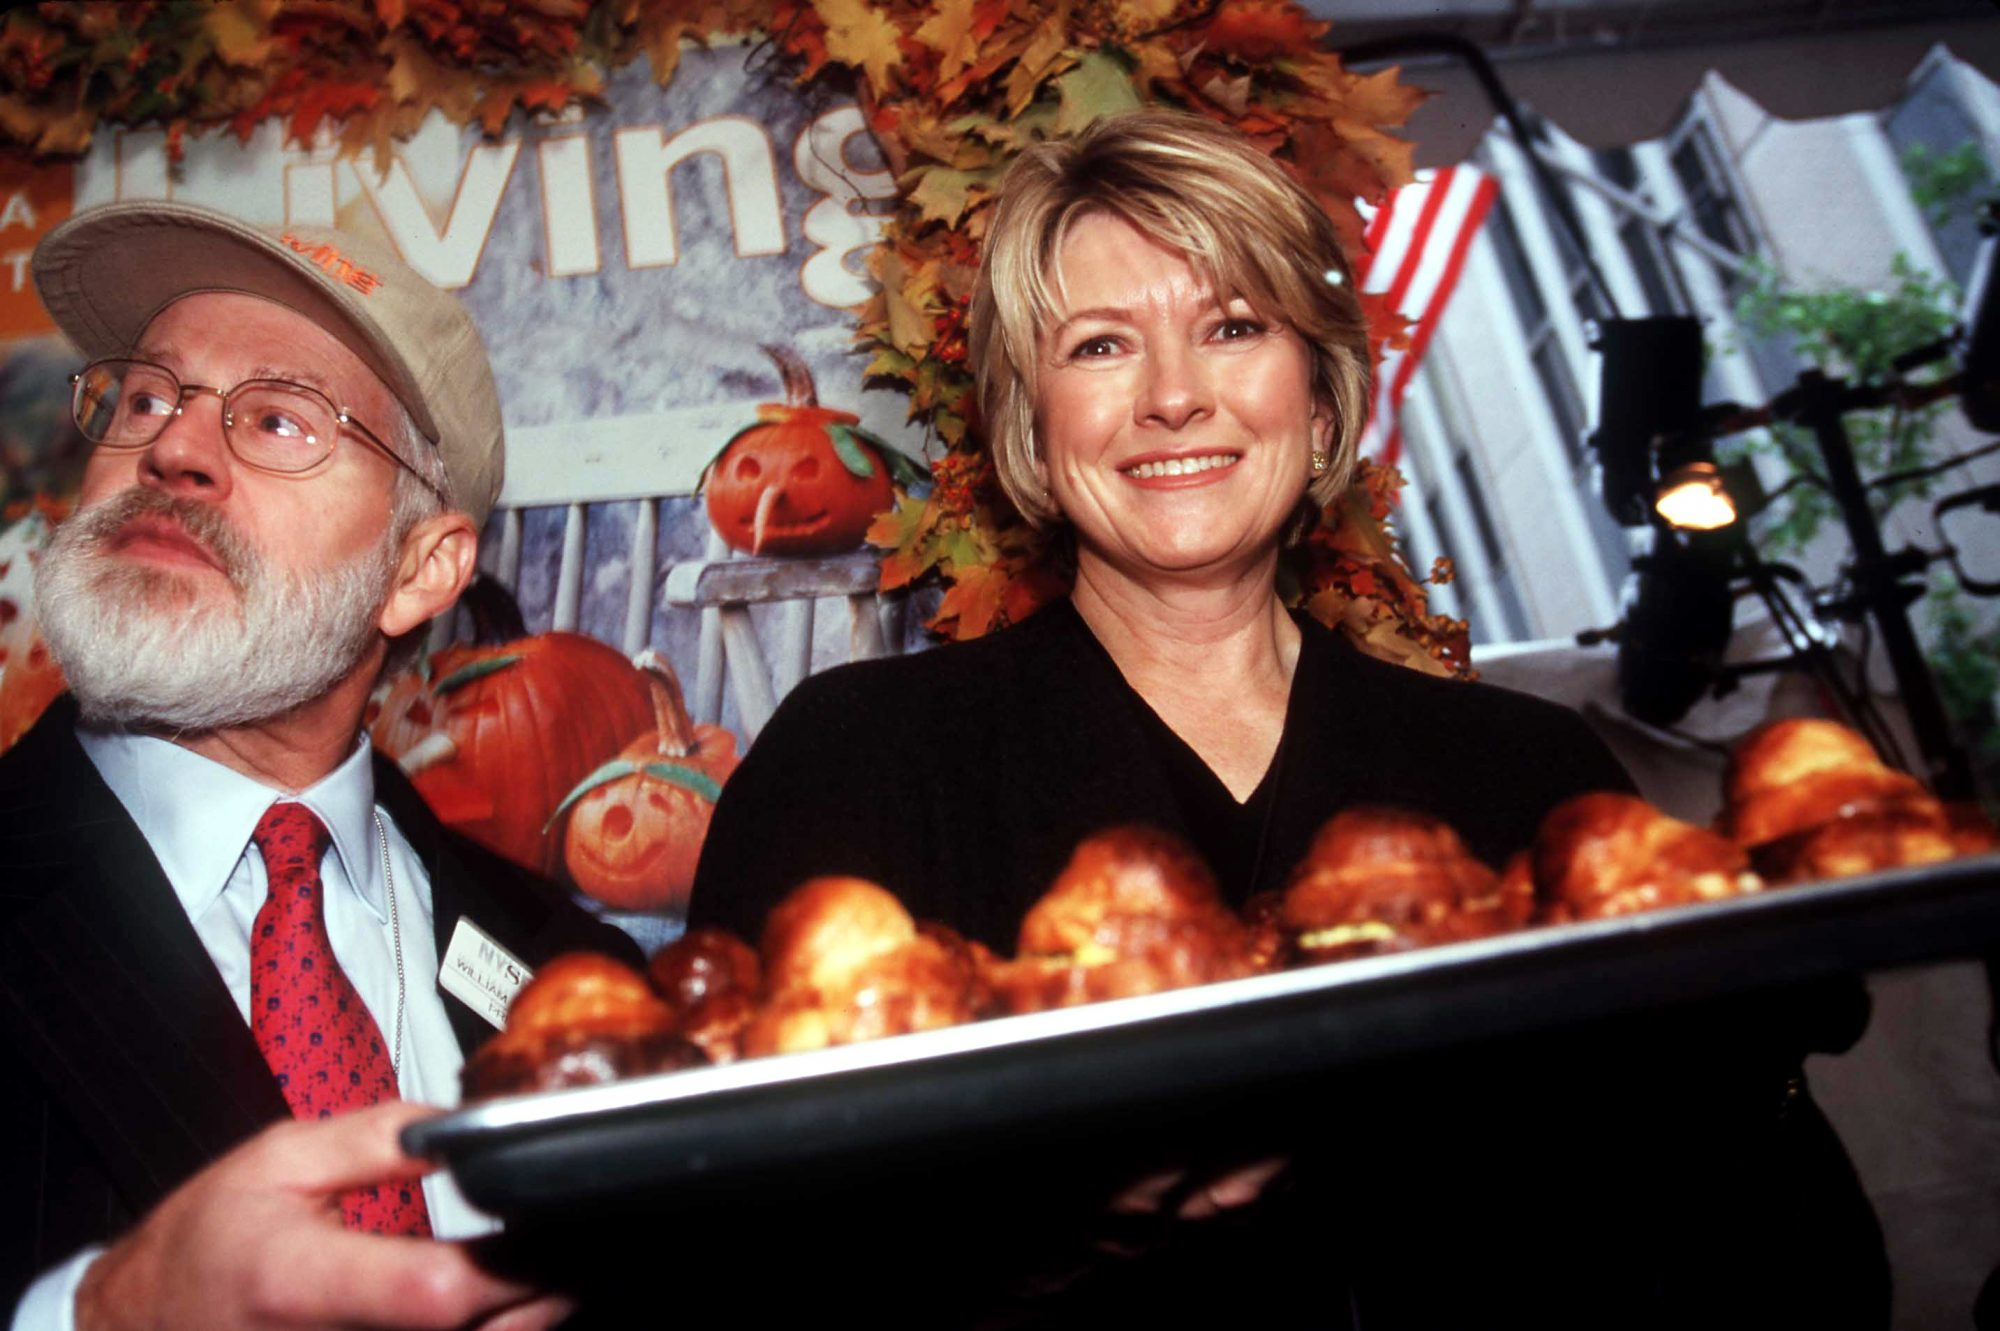 martha stewart at new york stock exchange holding pastries